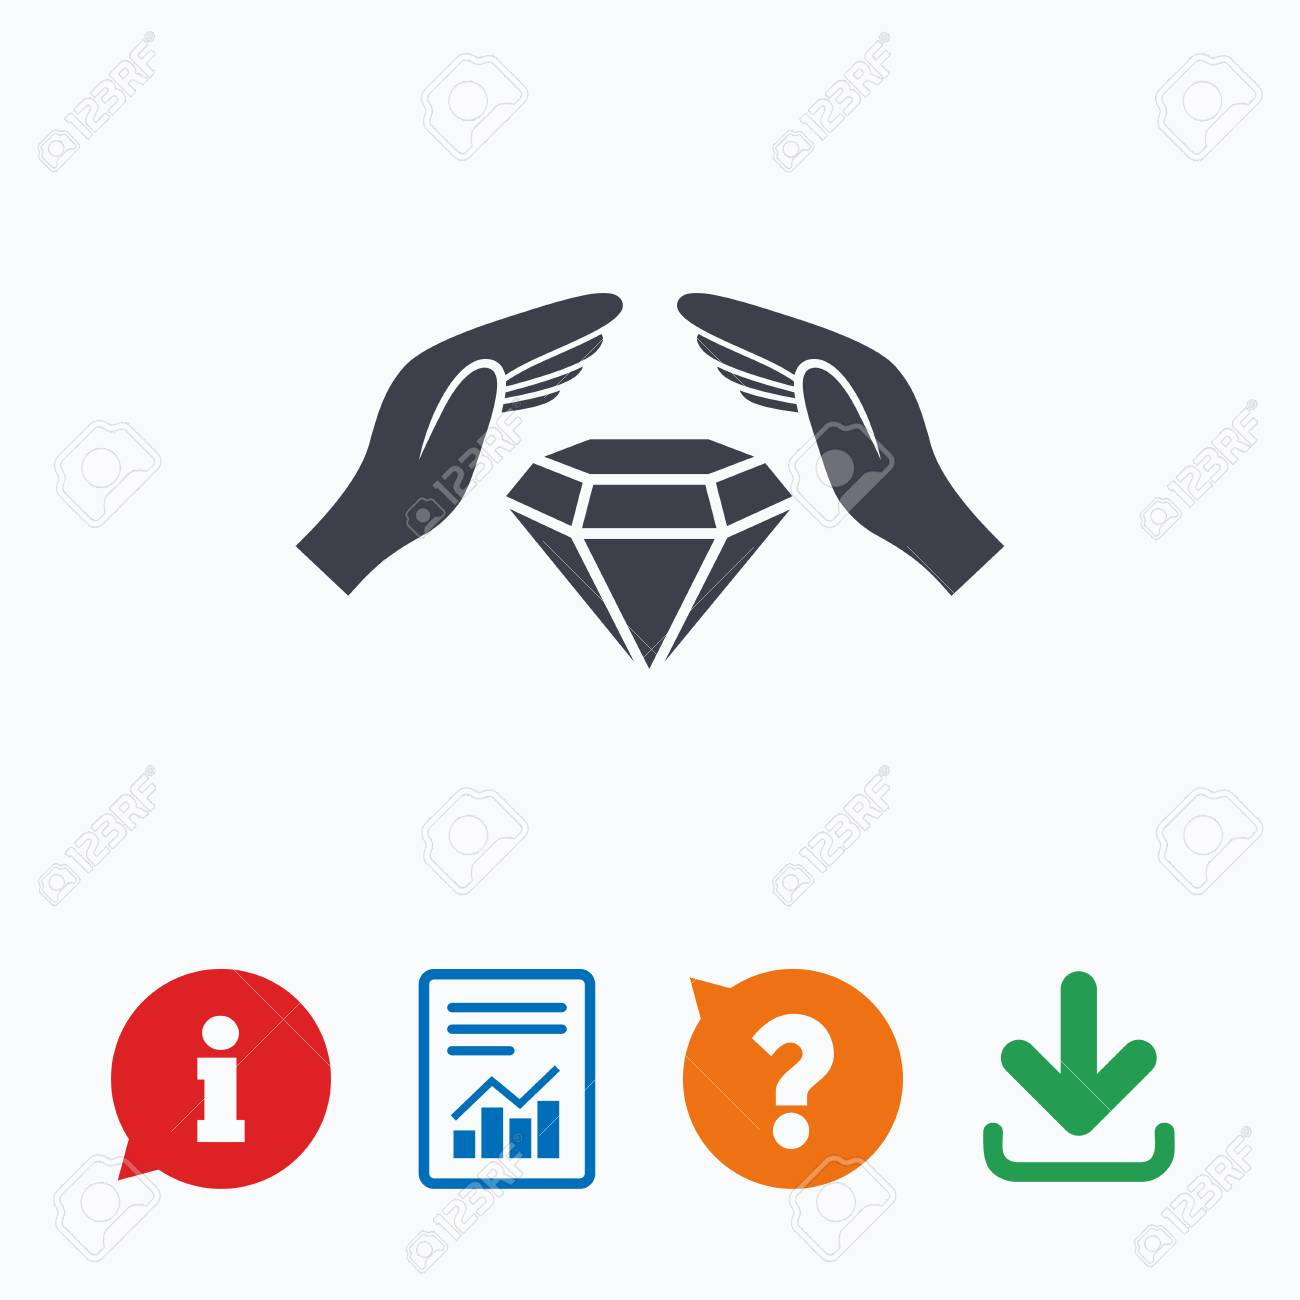 Jewelry insurance sign icon  Hands protect cover diamonds symbol